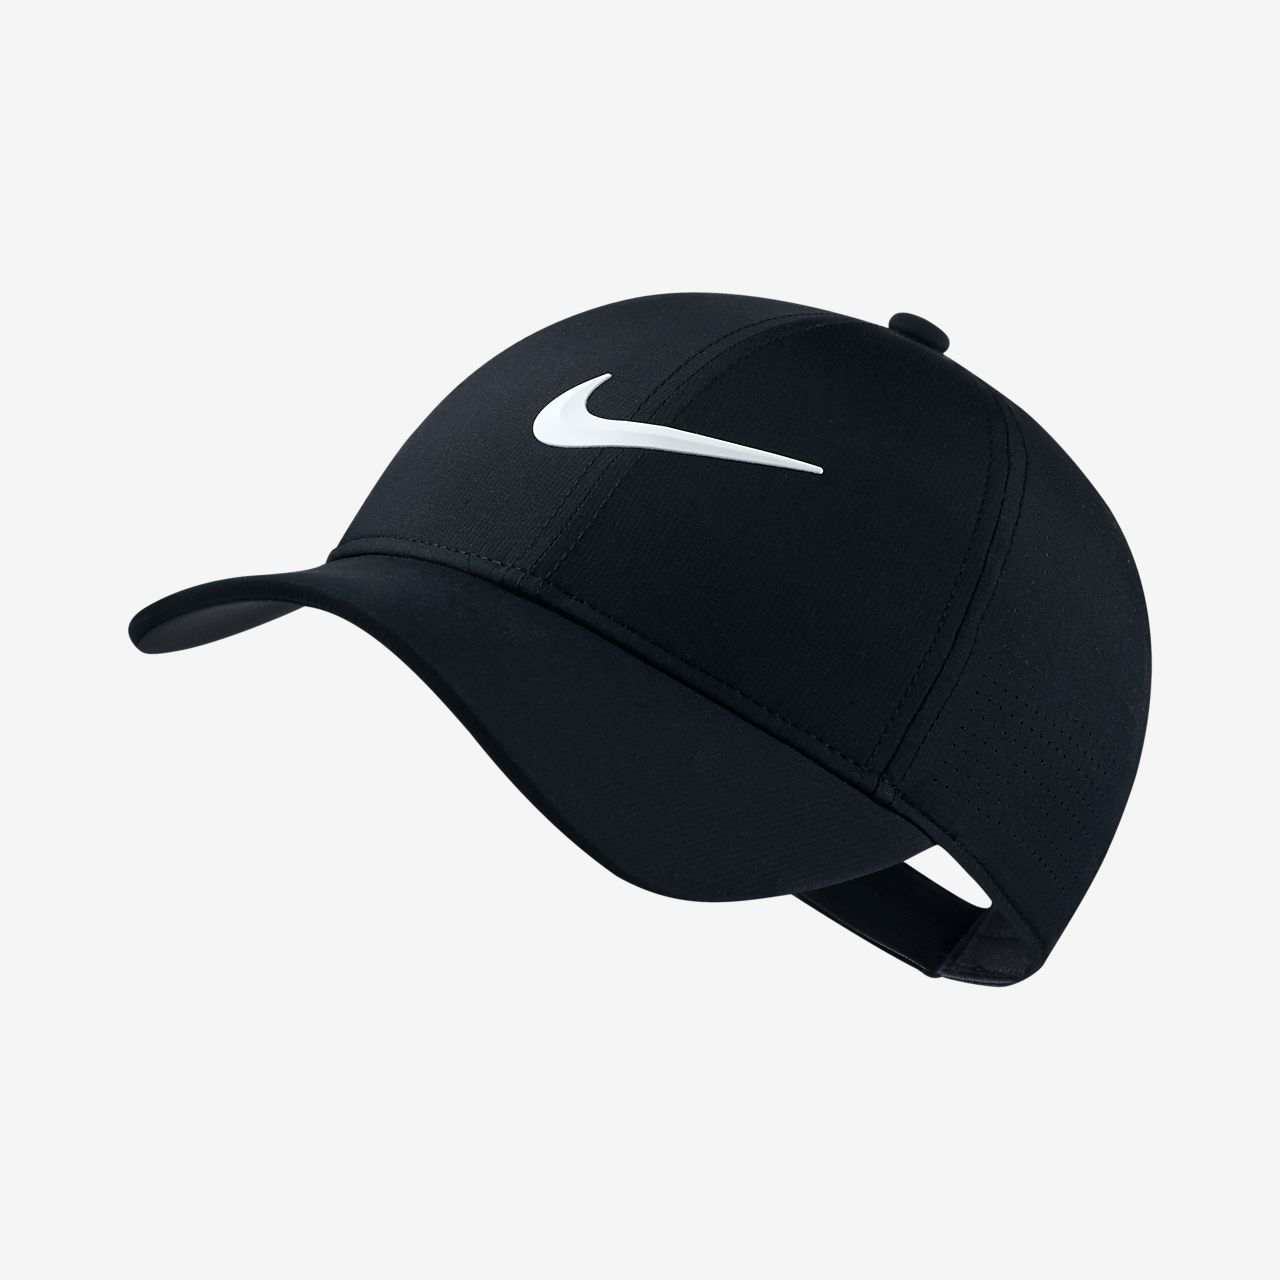 Nike AeroBill Legacy 91 Adjustable Golf Hat